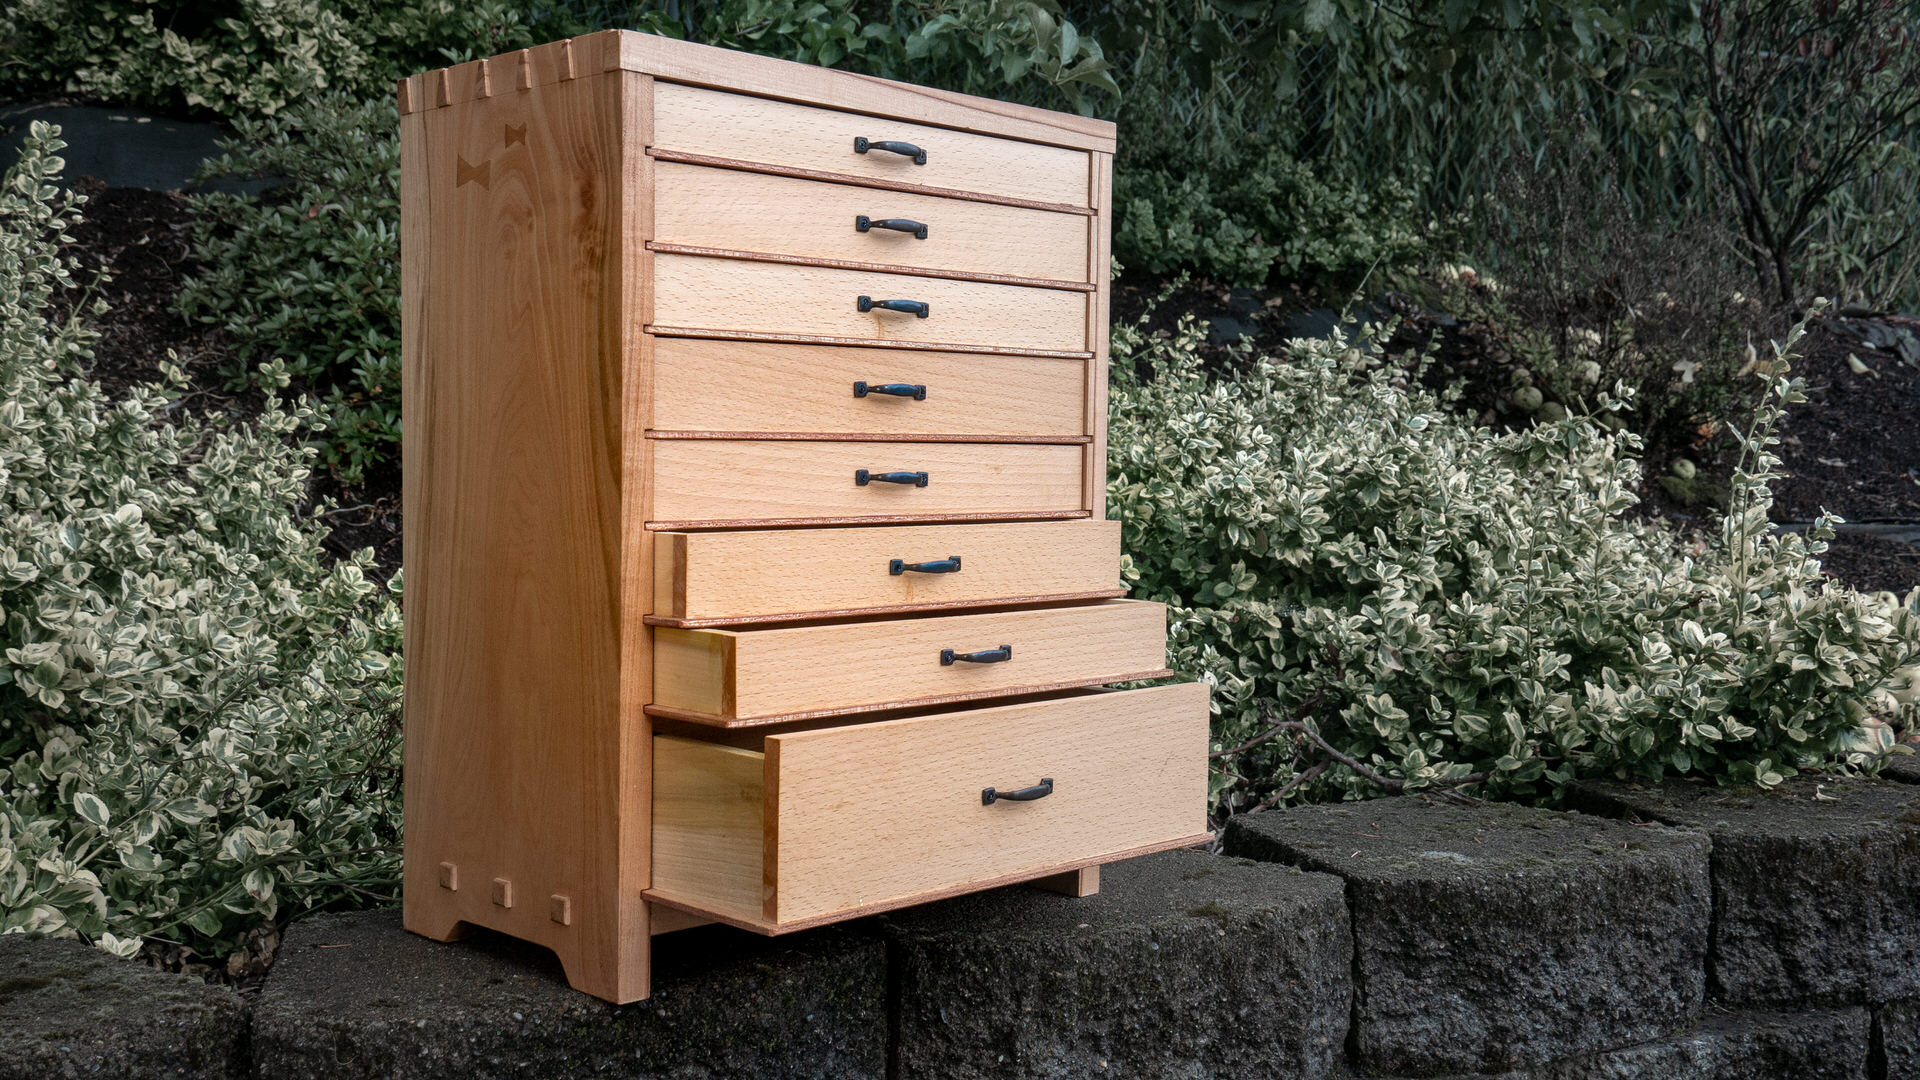 Make A Wooden Tool Chest With Drawers